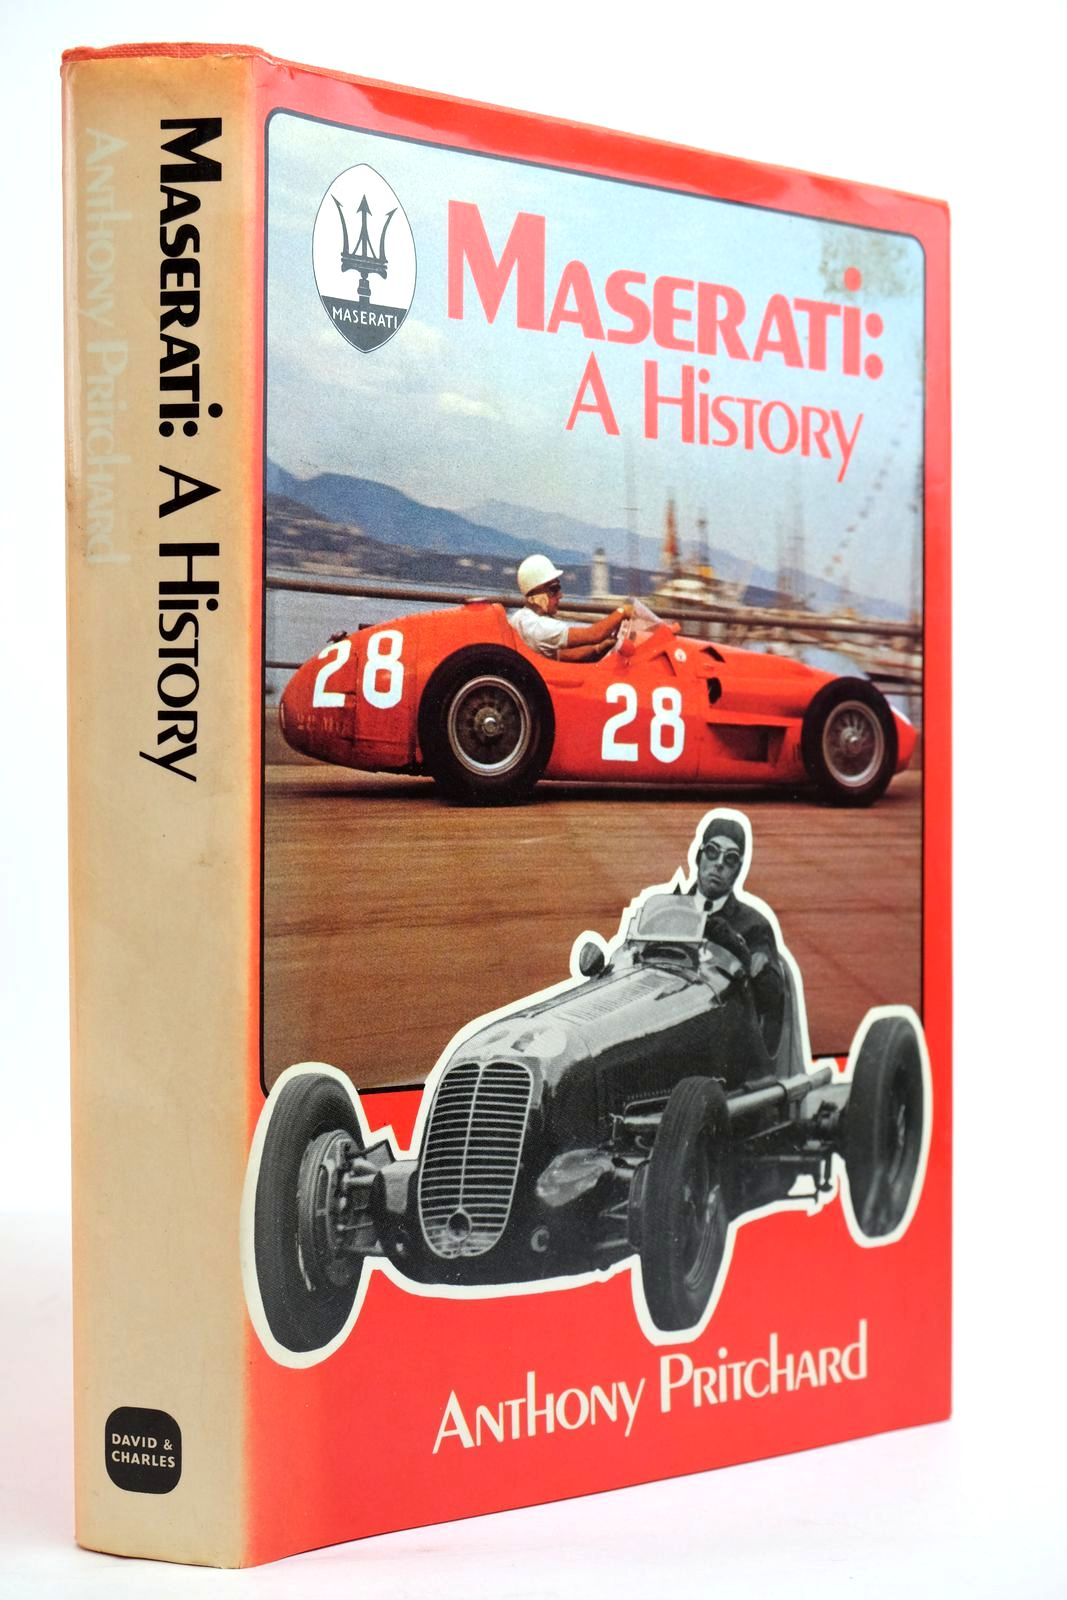 Photo of MASERATI: A HISTORY written by Pritchard, Anthony published by David & Charles (STOCK CODE: 2134351)  for sale by Stella & Rose's Books